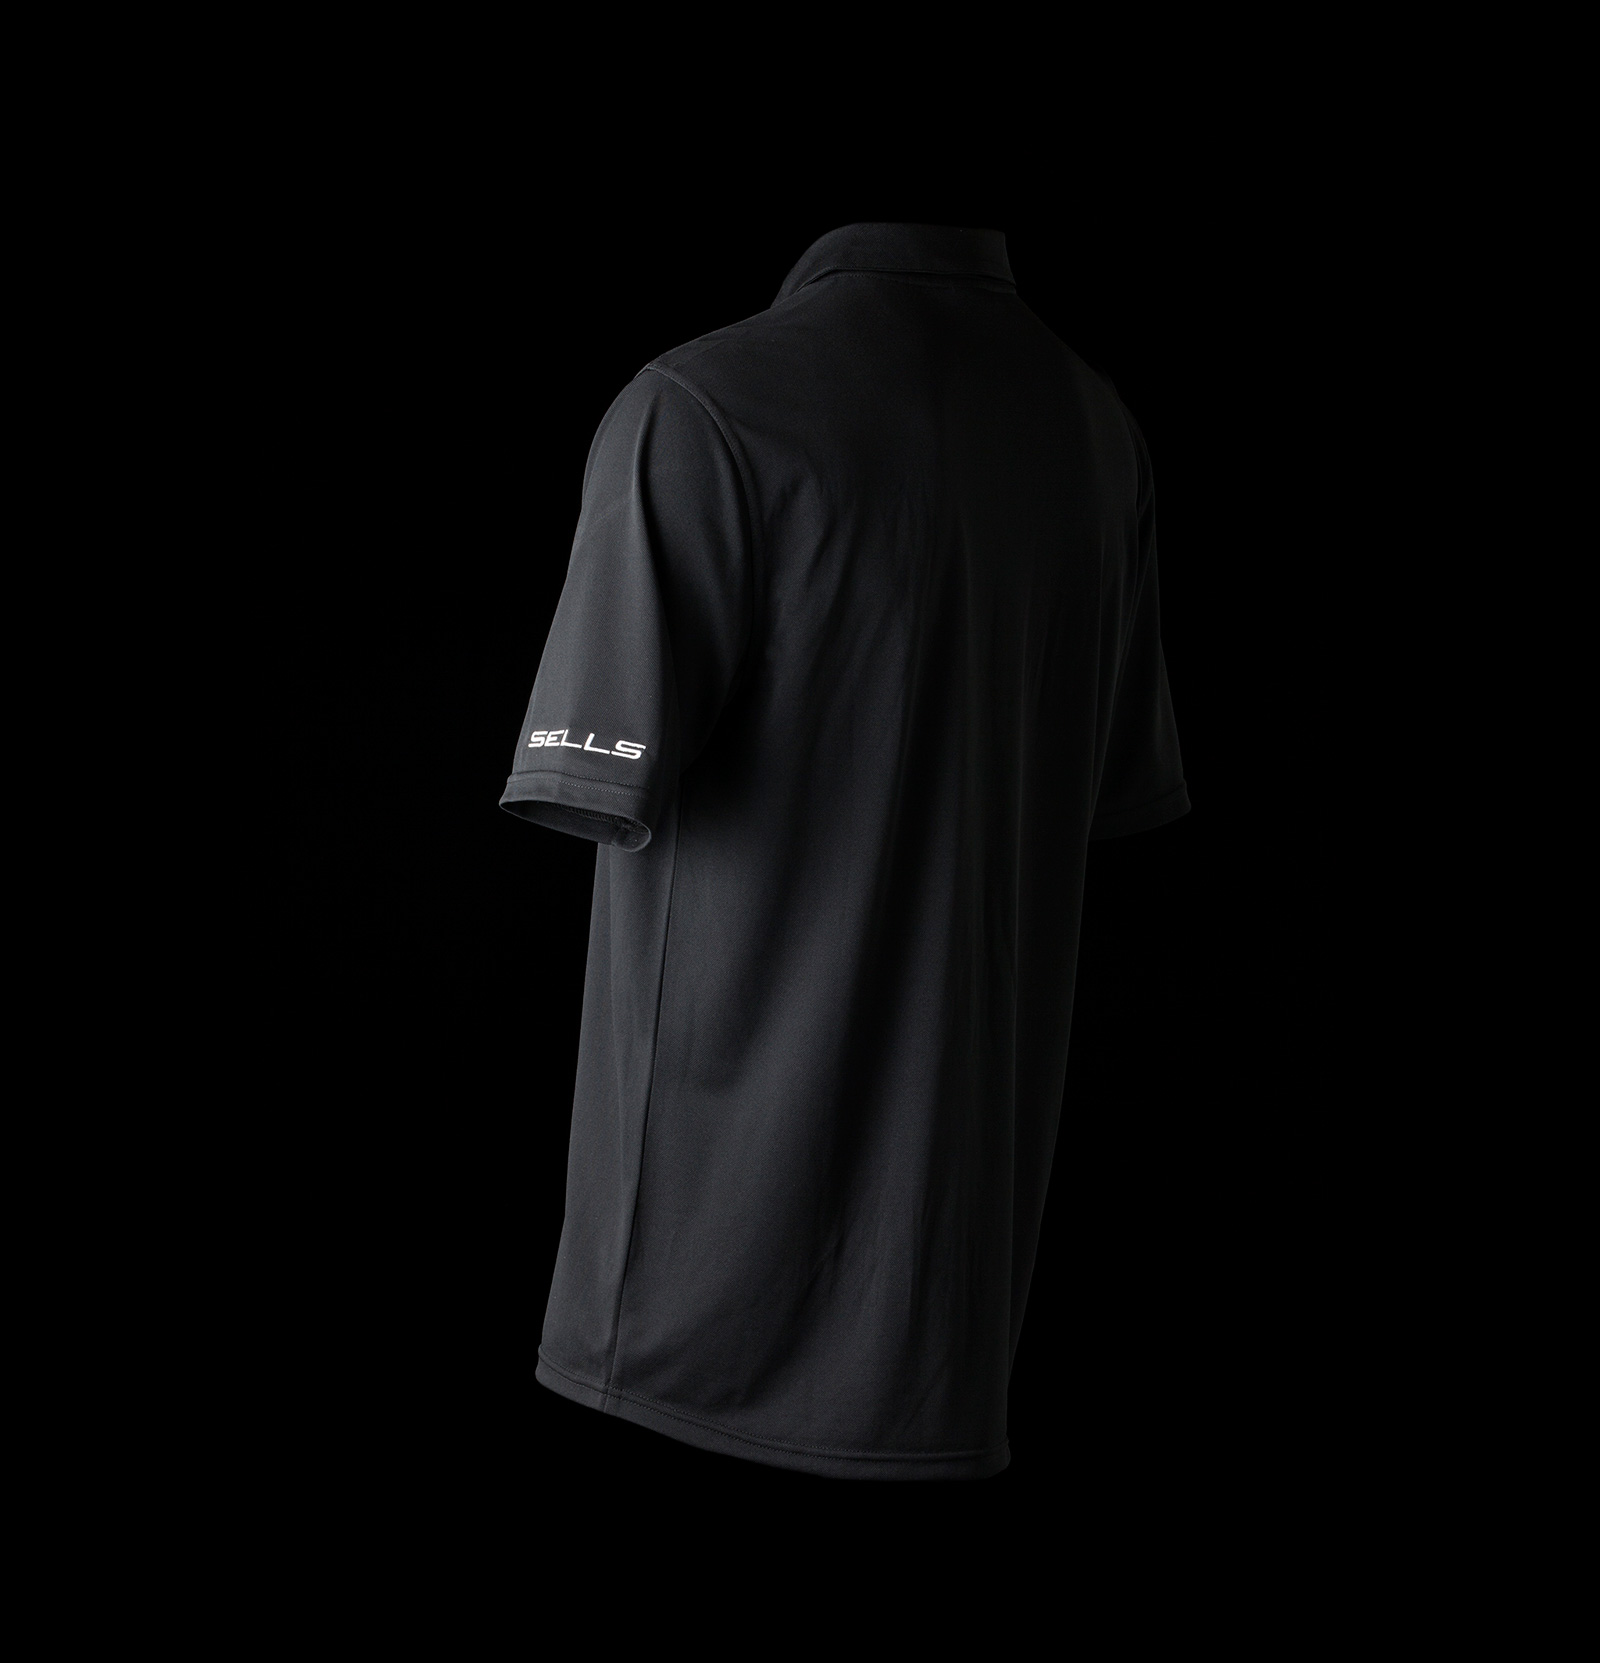 Excel-Polo-Shirt-Promo-27